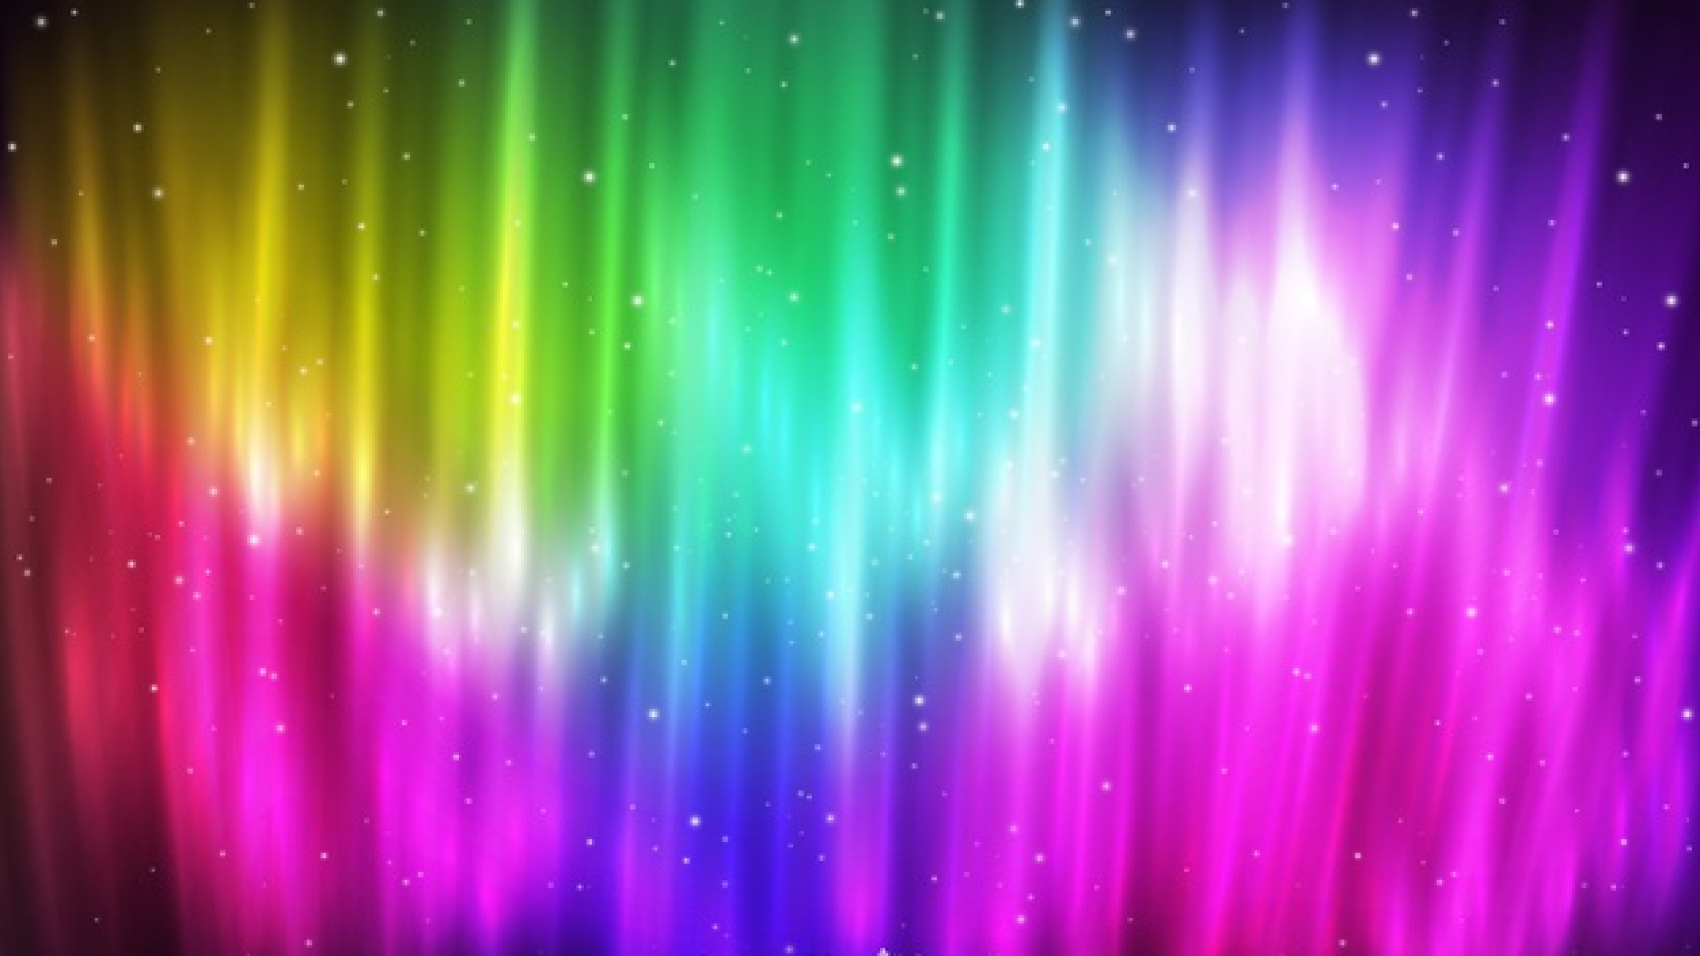 northern-colourful-lights-background_23-2148260405